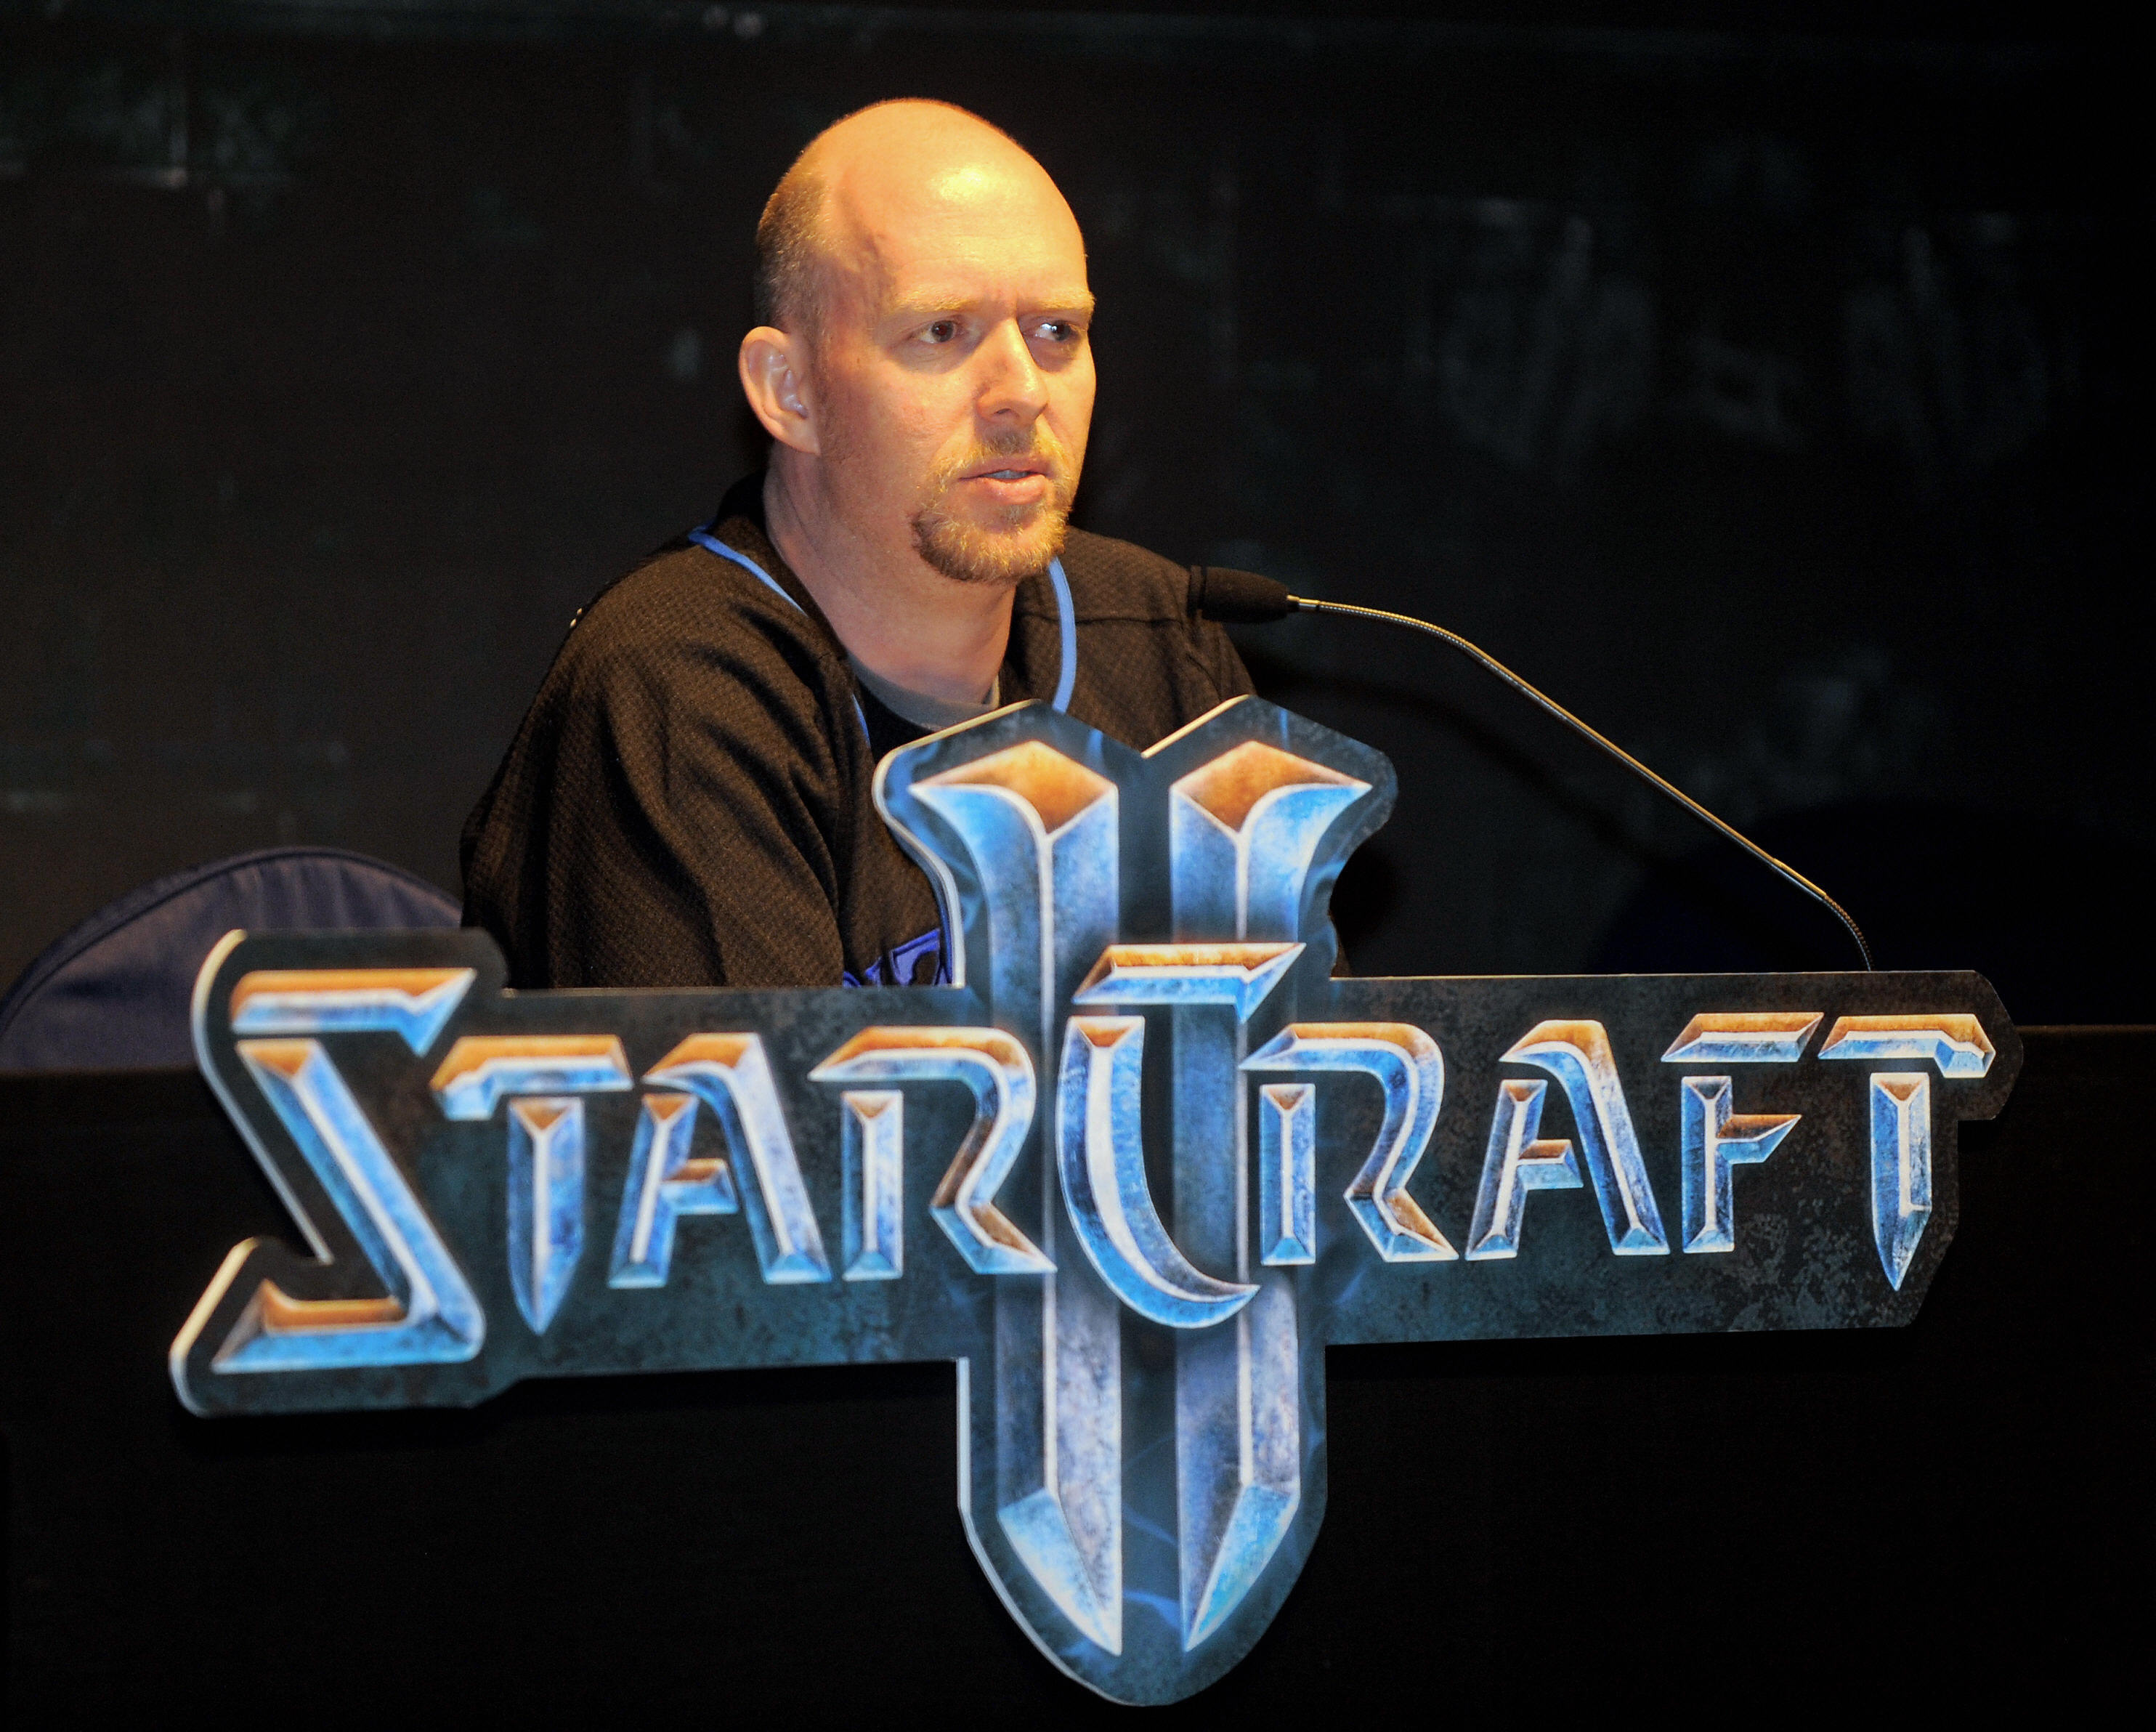 Frank Pearce left the company after 28 years, following co-founder Michael Morhaime, the president of Blizzard who departed in October.